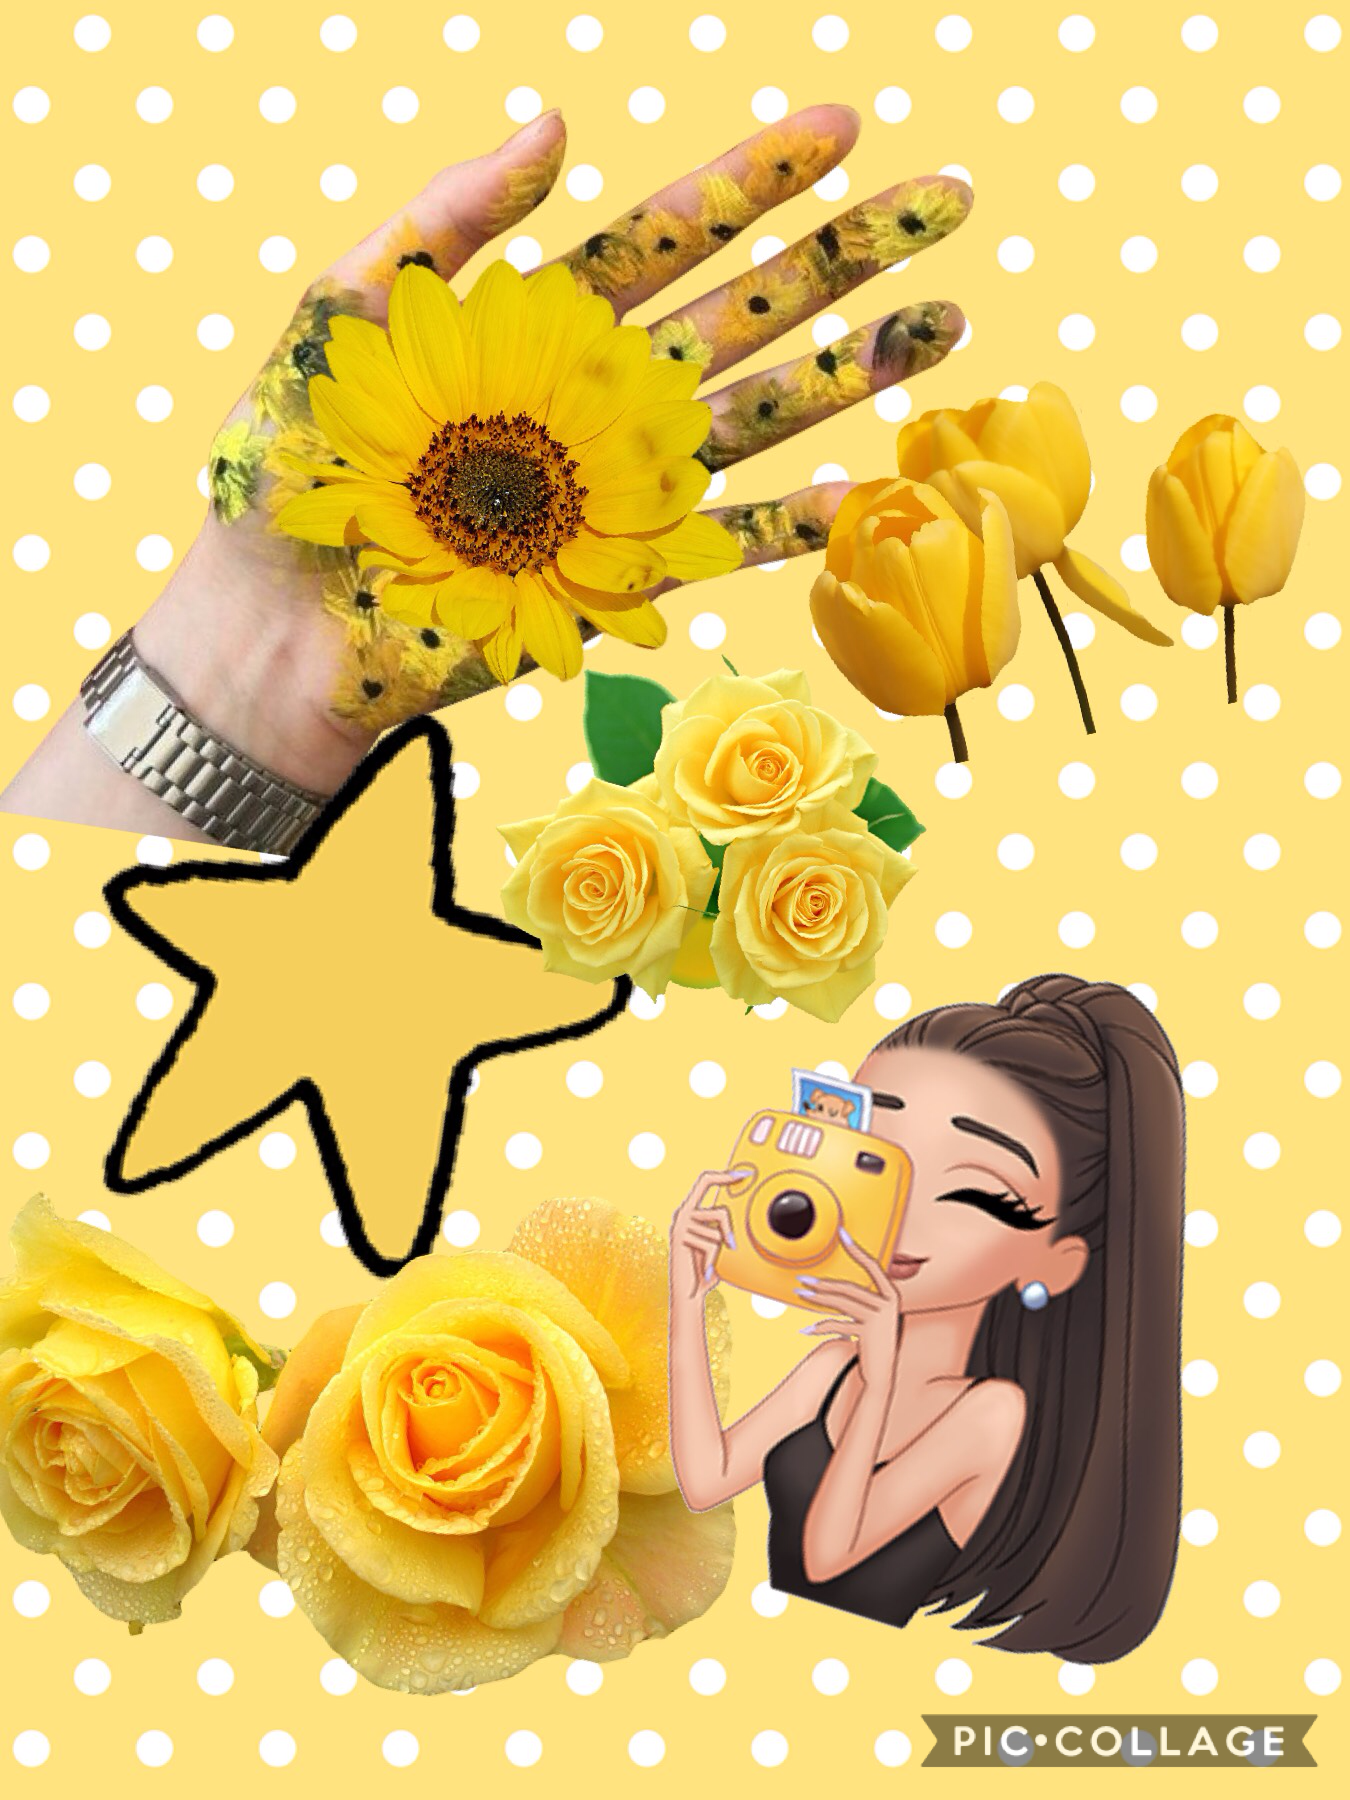 Hey guys it's aesthetic_ashleigh and the this is a yellow pic follow me ☺️😊